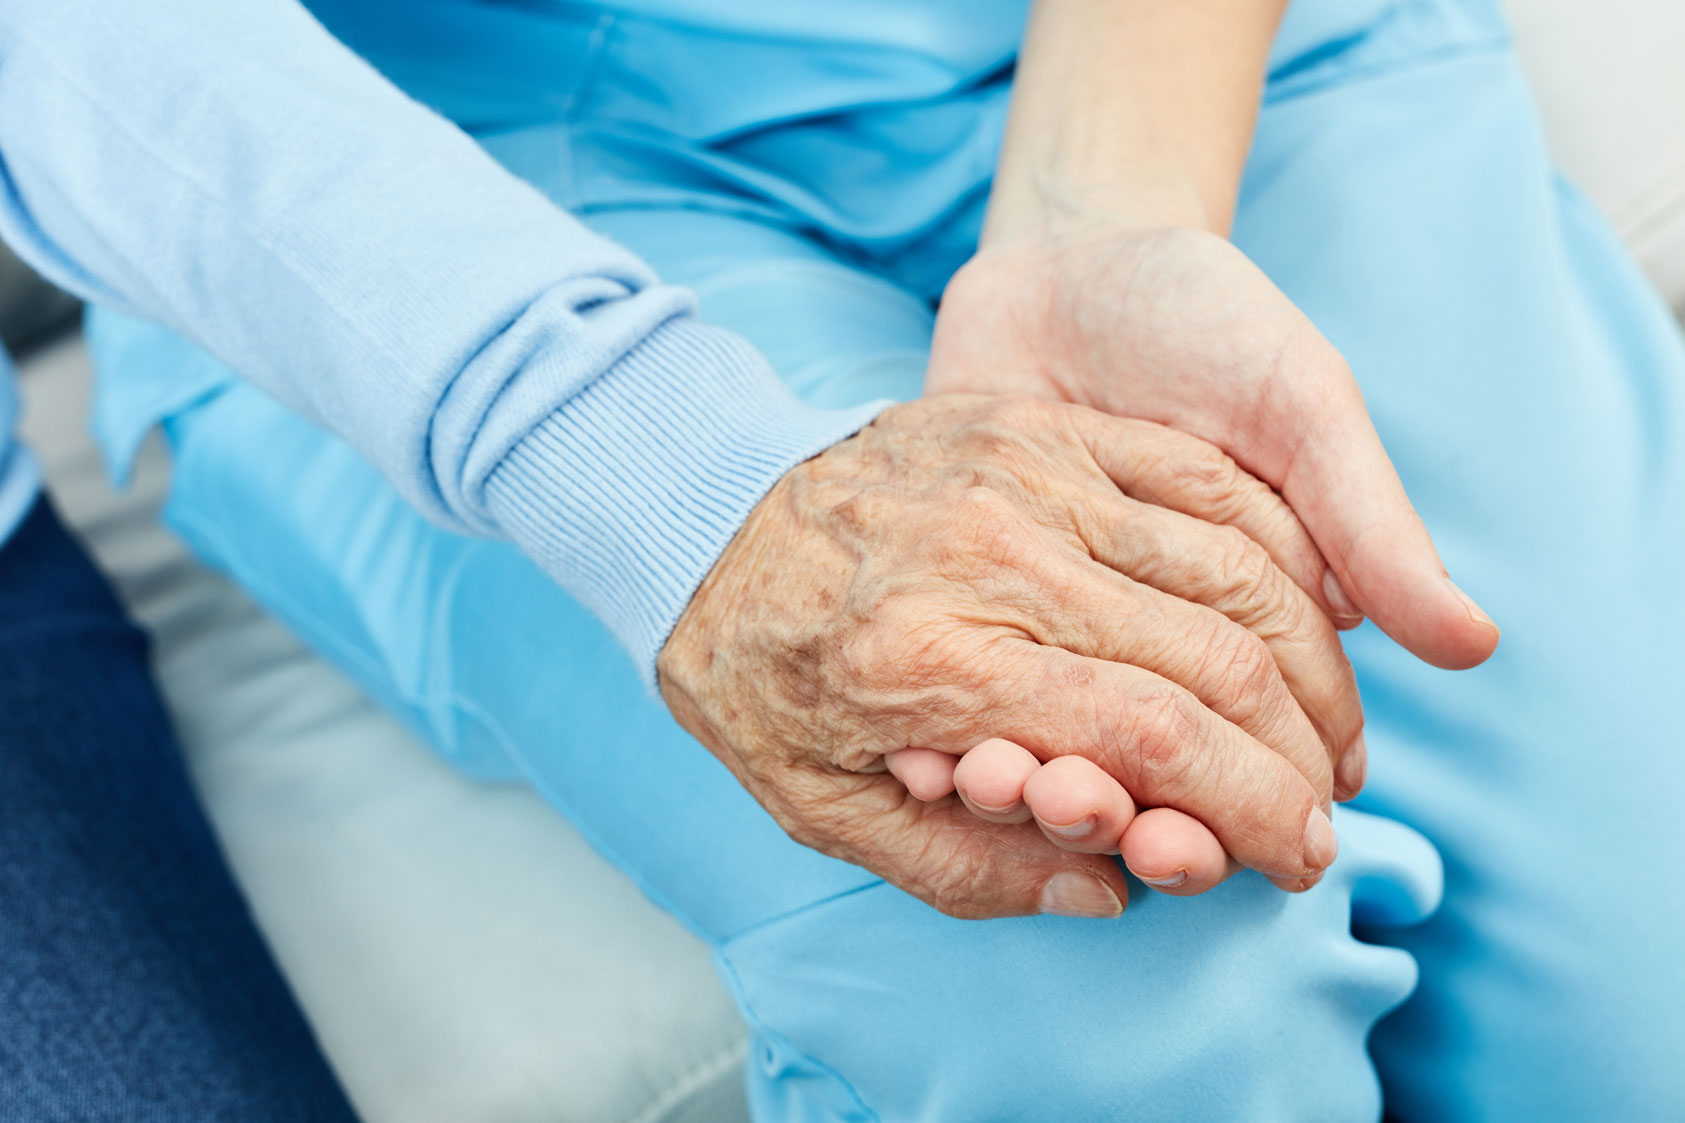 Nurse holding patients hand